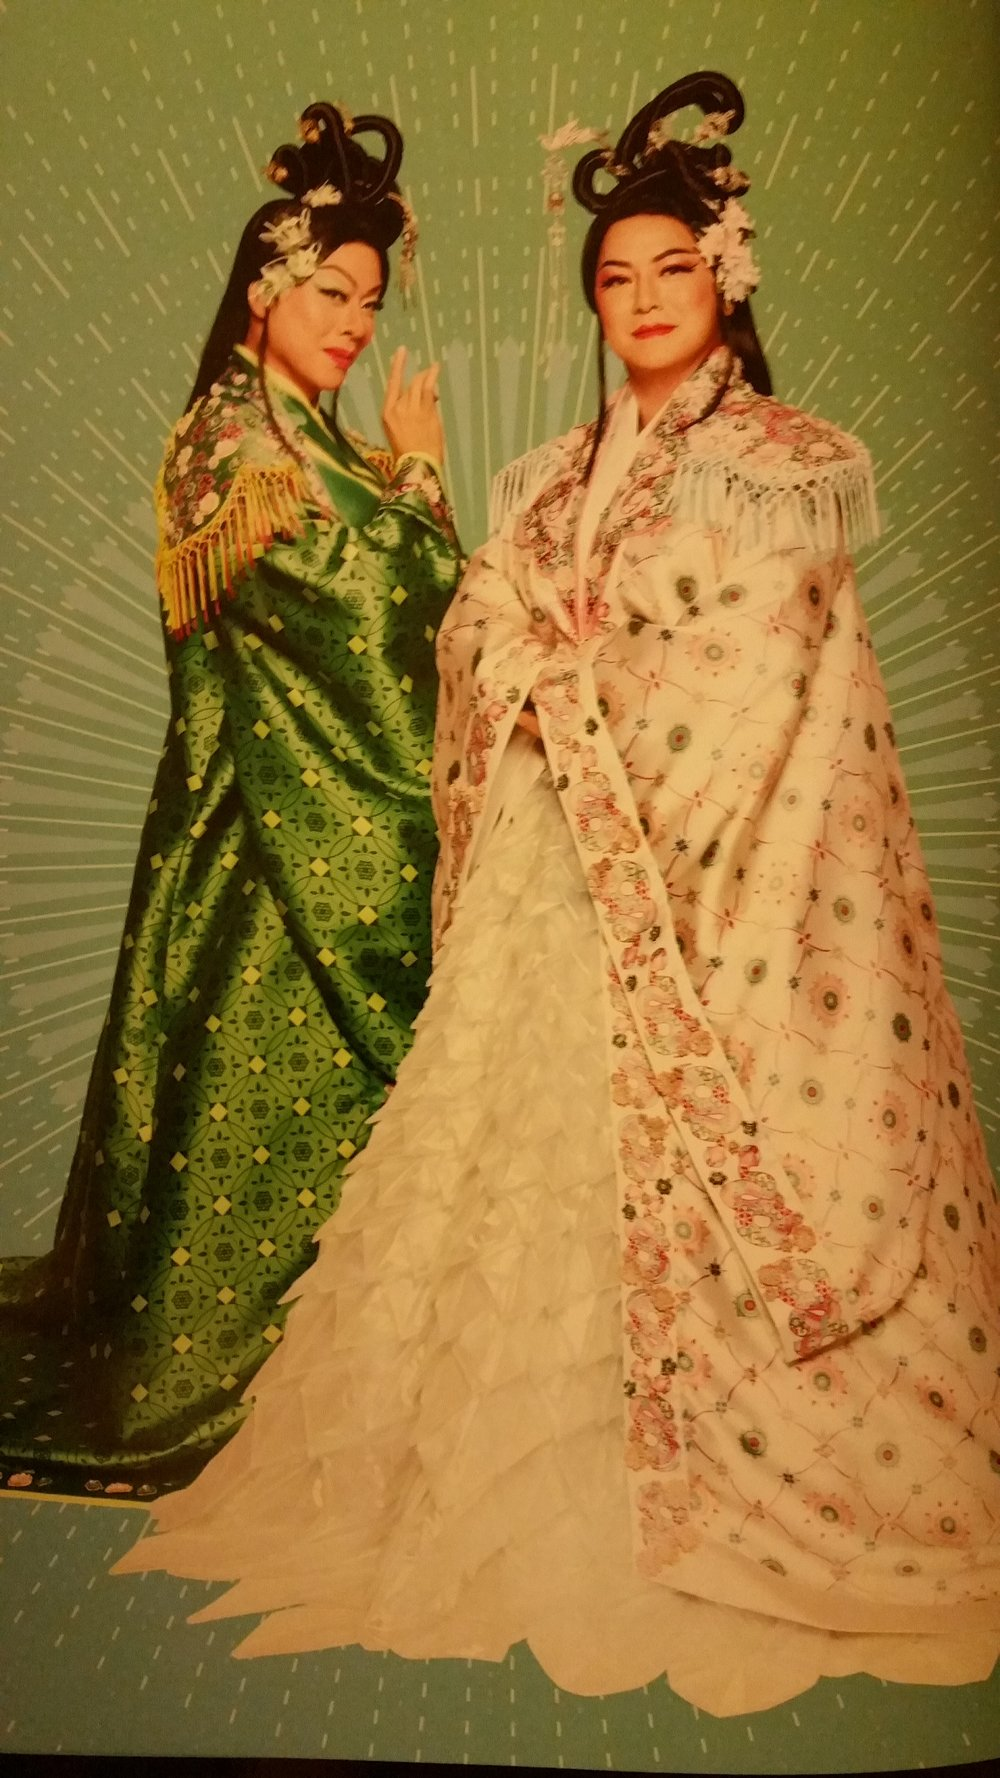 Madam White & Auntie Green (image from the Mama White Snake Programme Book)